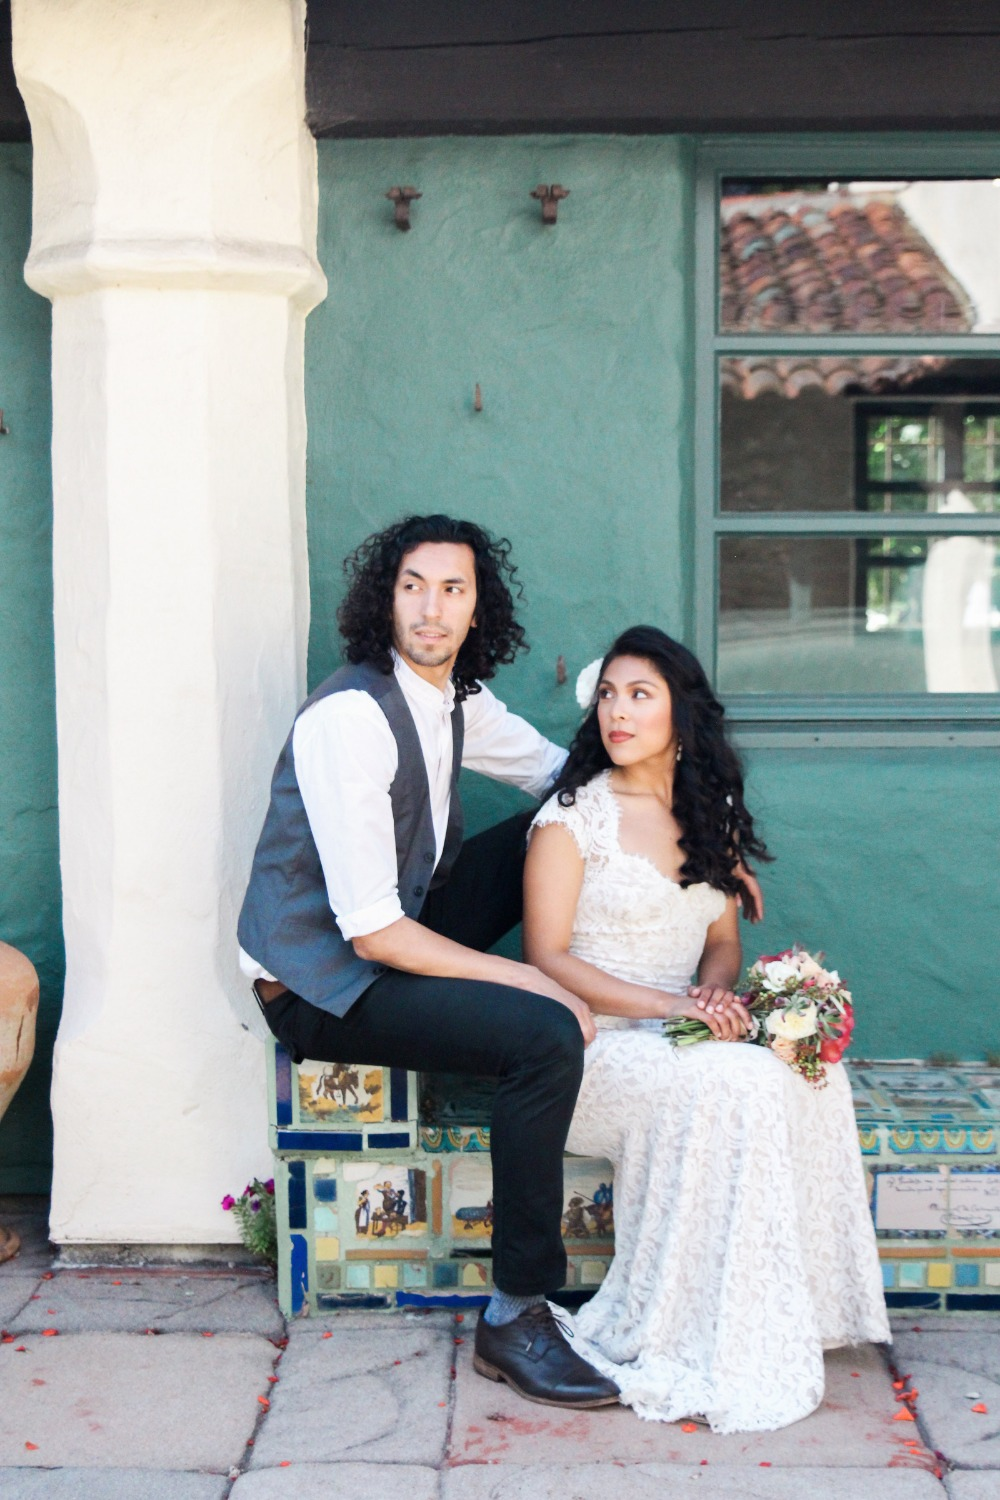 Old world Mexico inspired wedding ideas